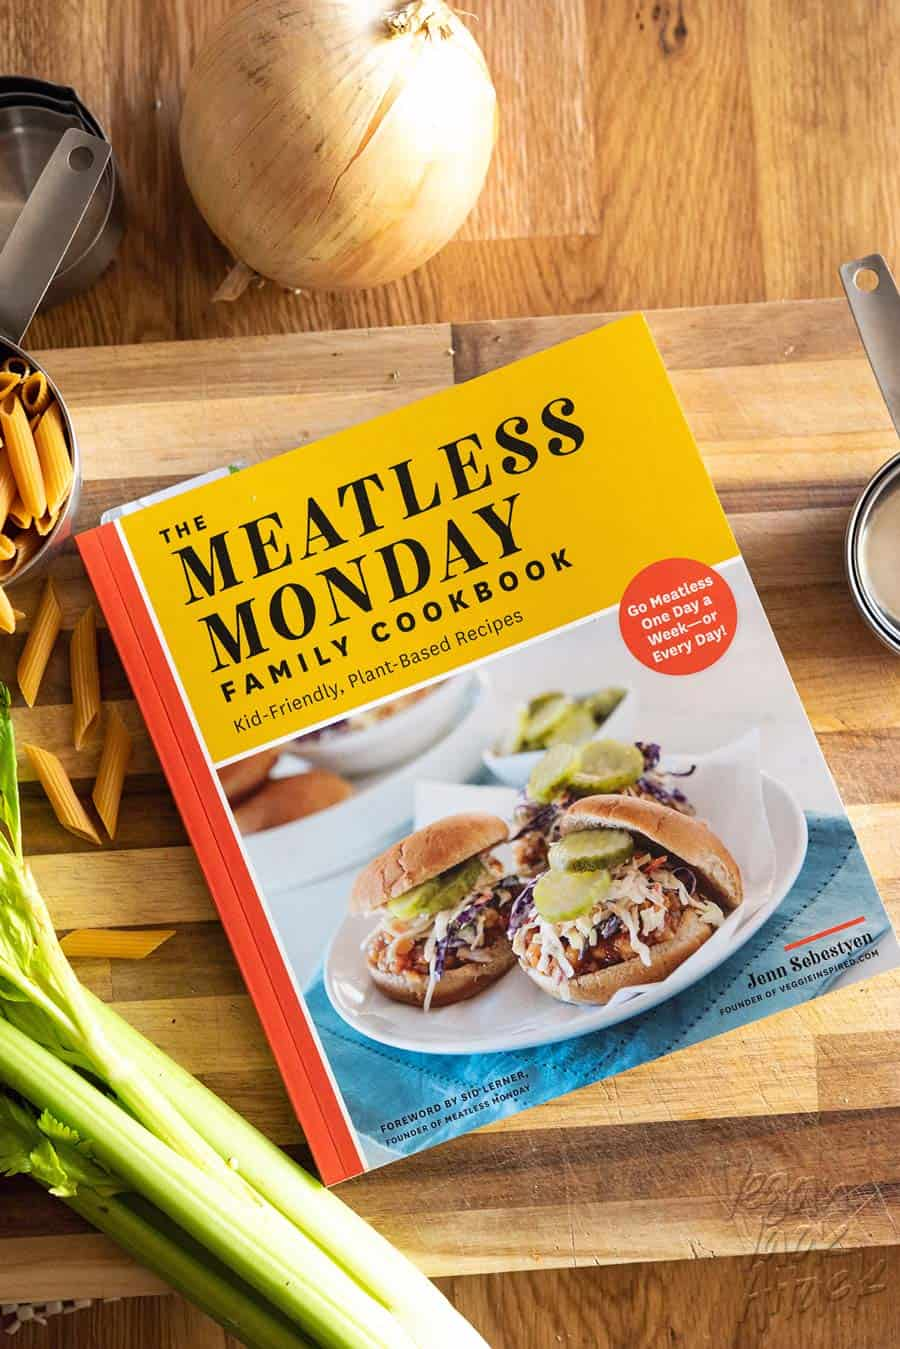 The Meatless Monday Family Cookbook on a cutting board with dried pasta, celery and onion.